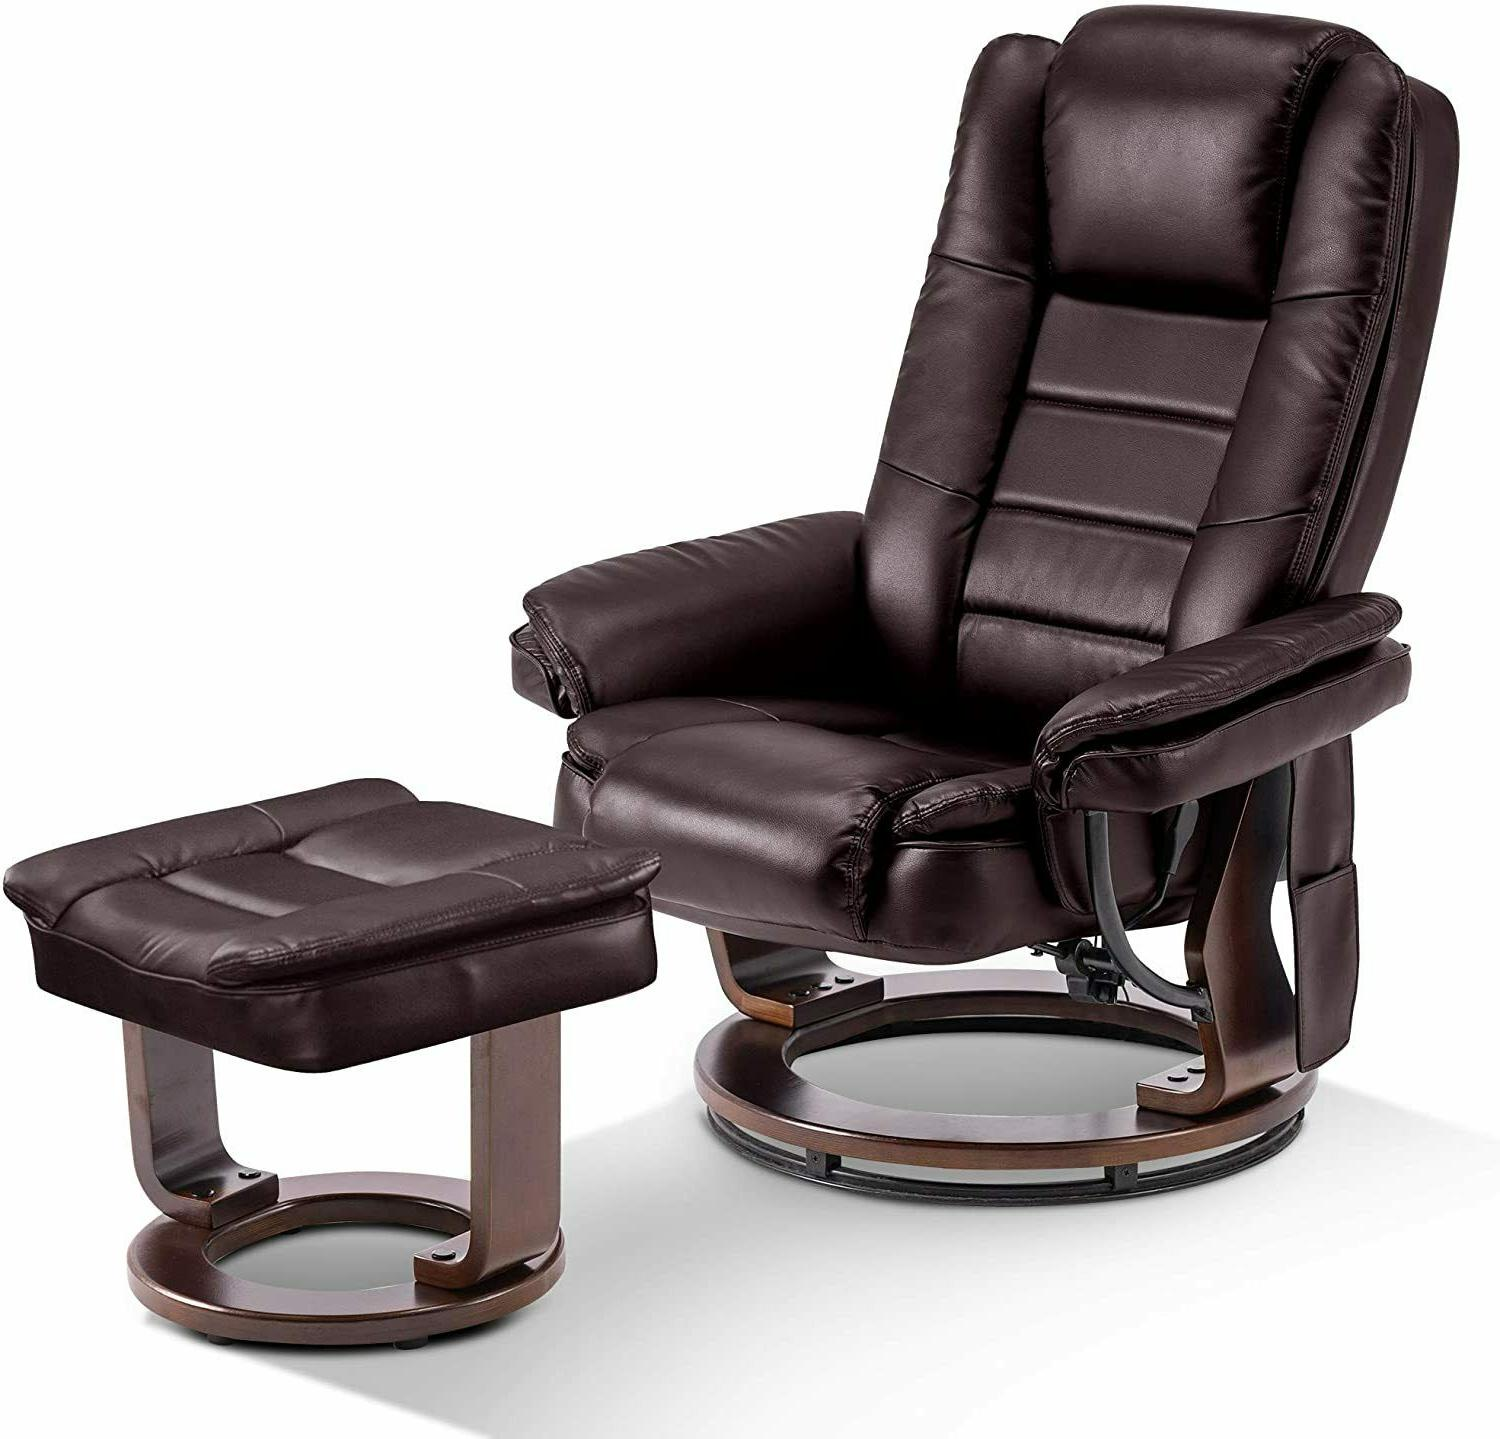 recliner with ottoman chair with vibration swivel